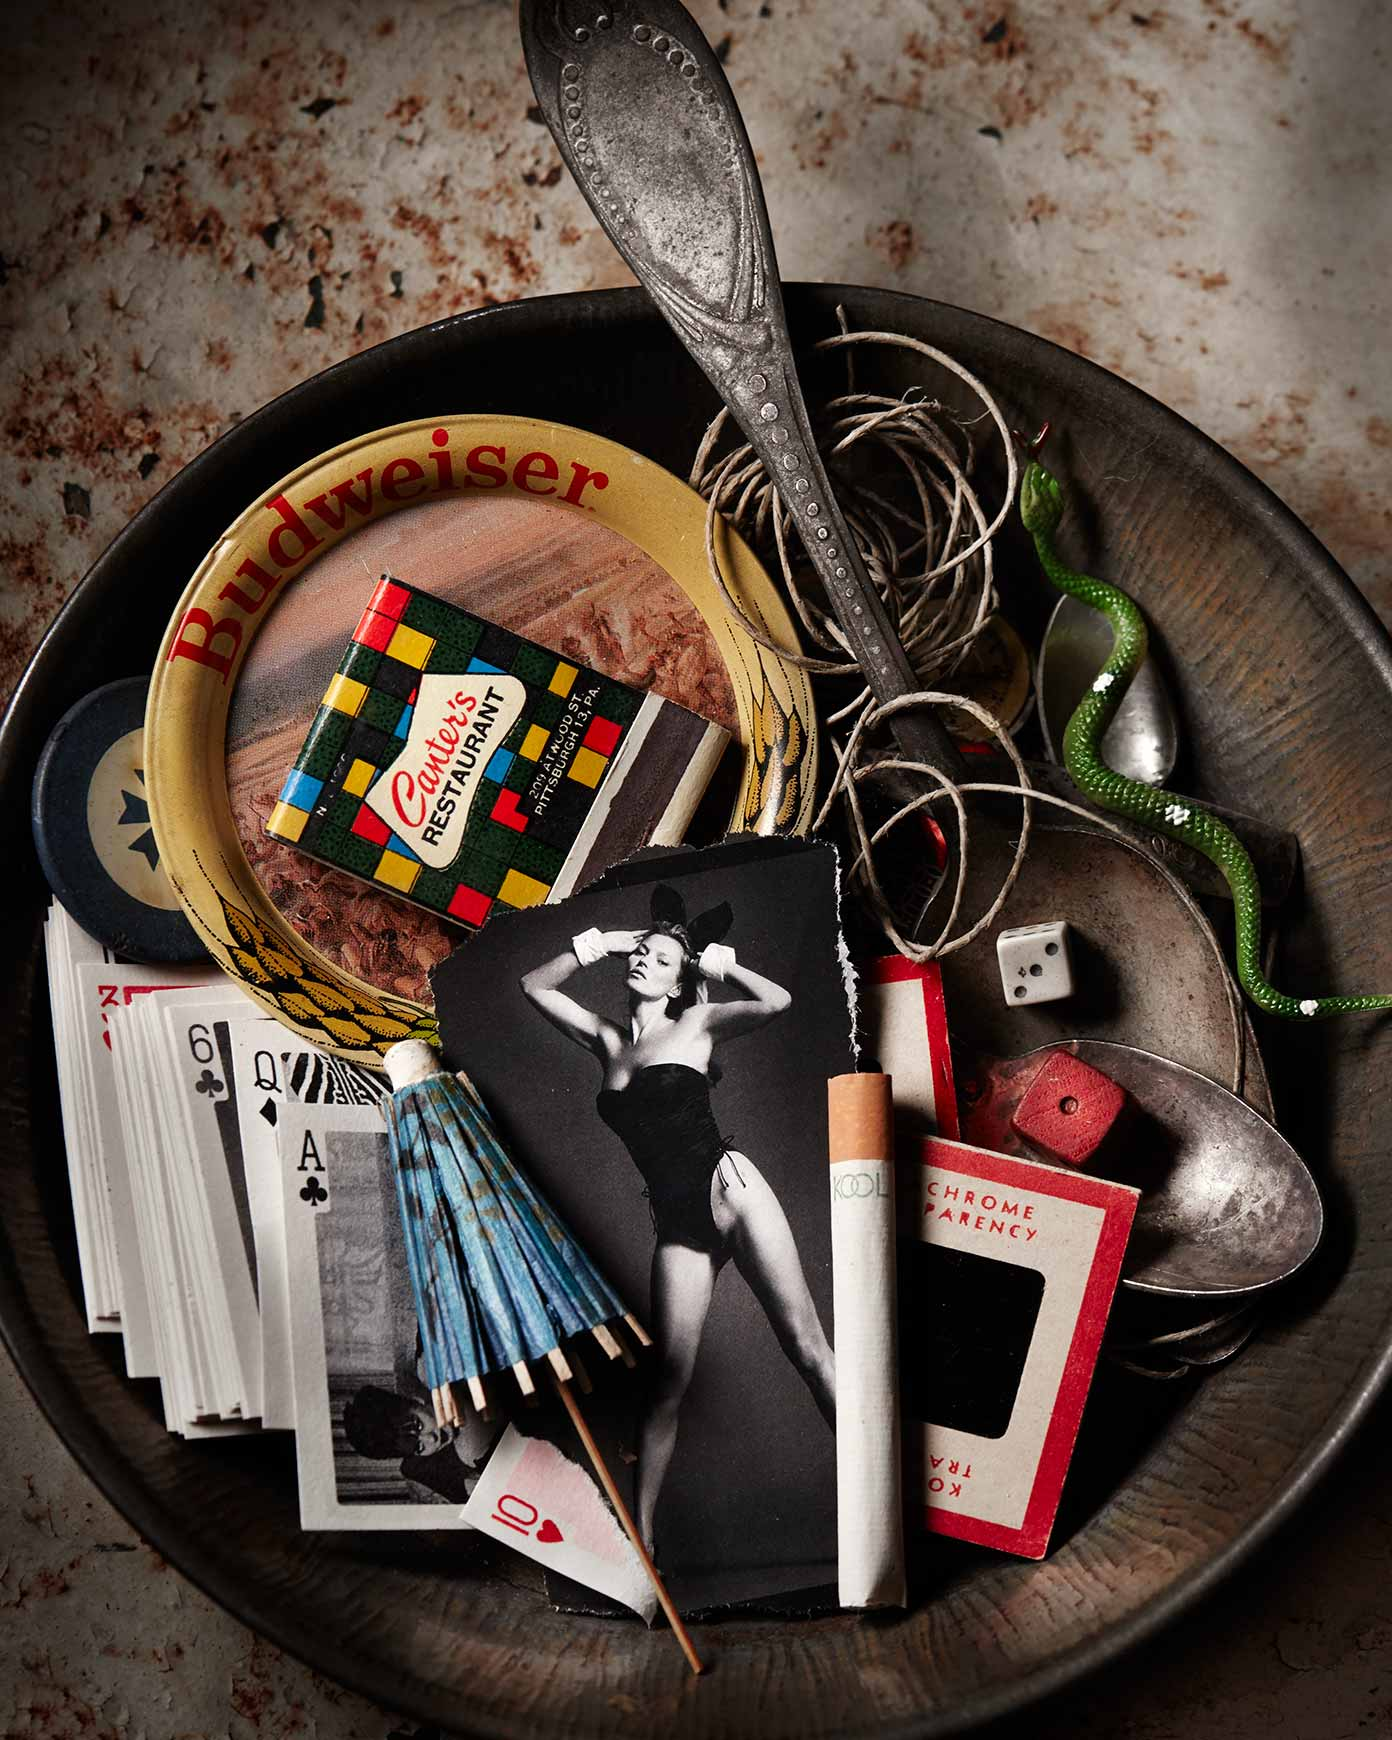 Still life photograph of a bowl with junk and Kate Moss.